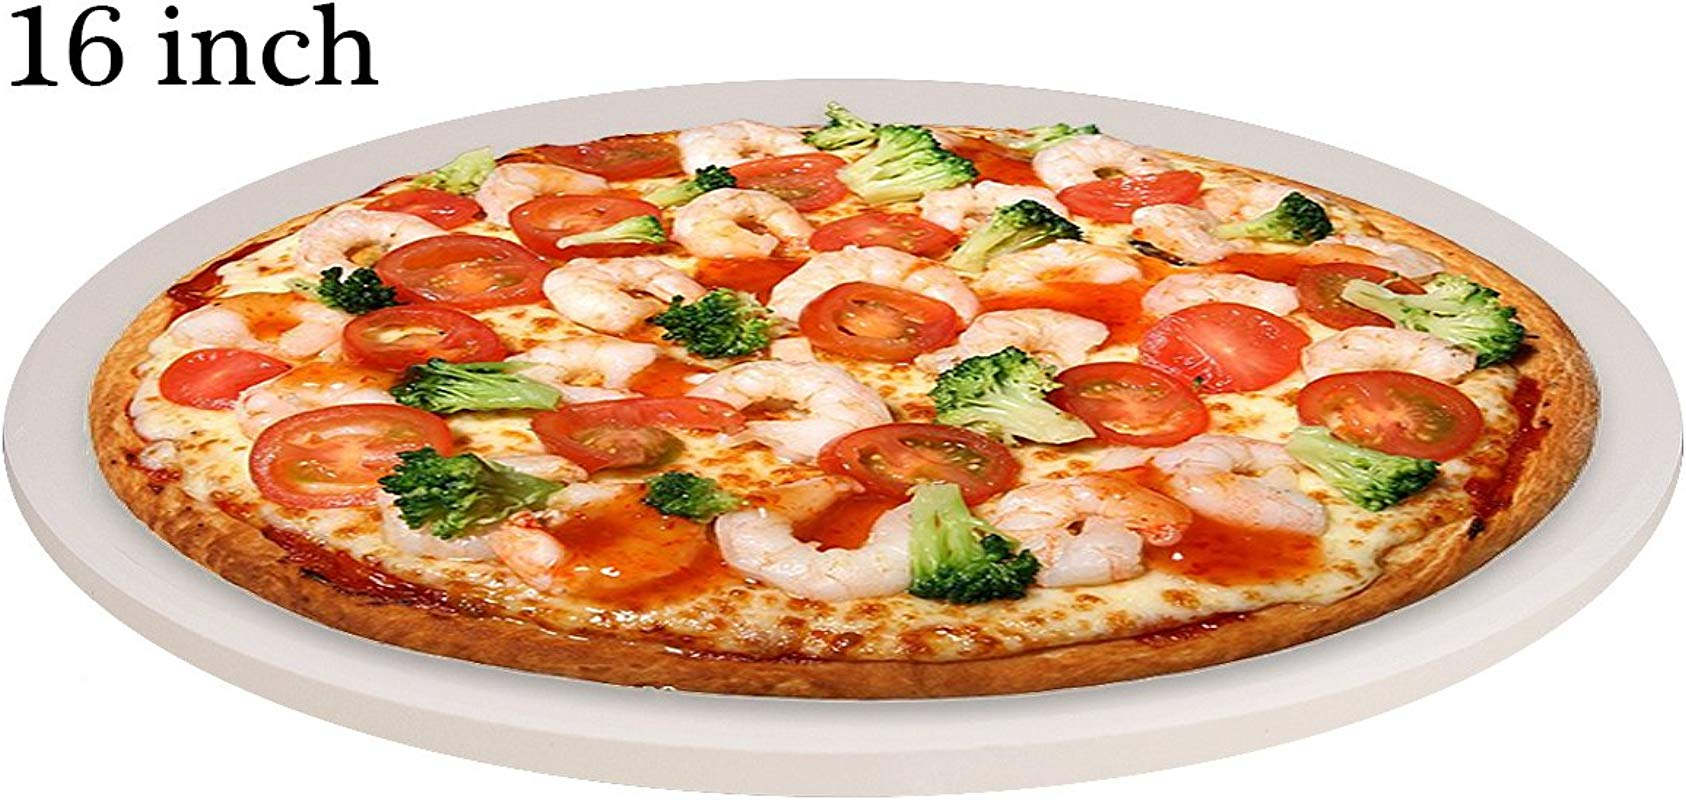 Extra Thick Round Pizza Stone For Cooking Baking Grilling JUNING